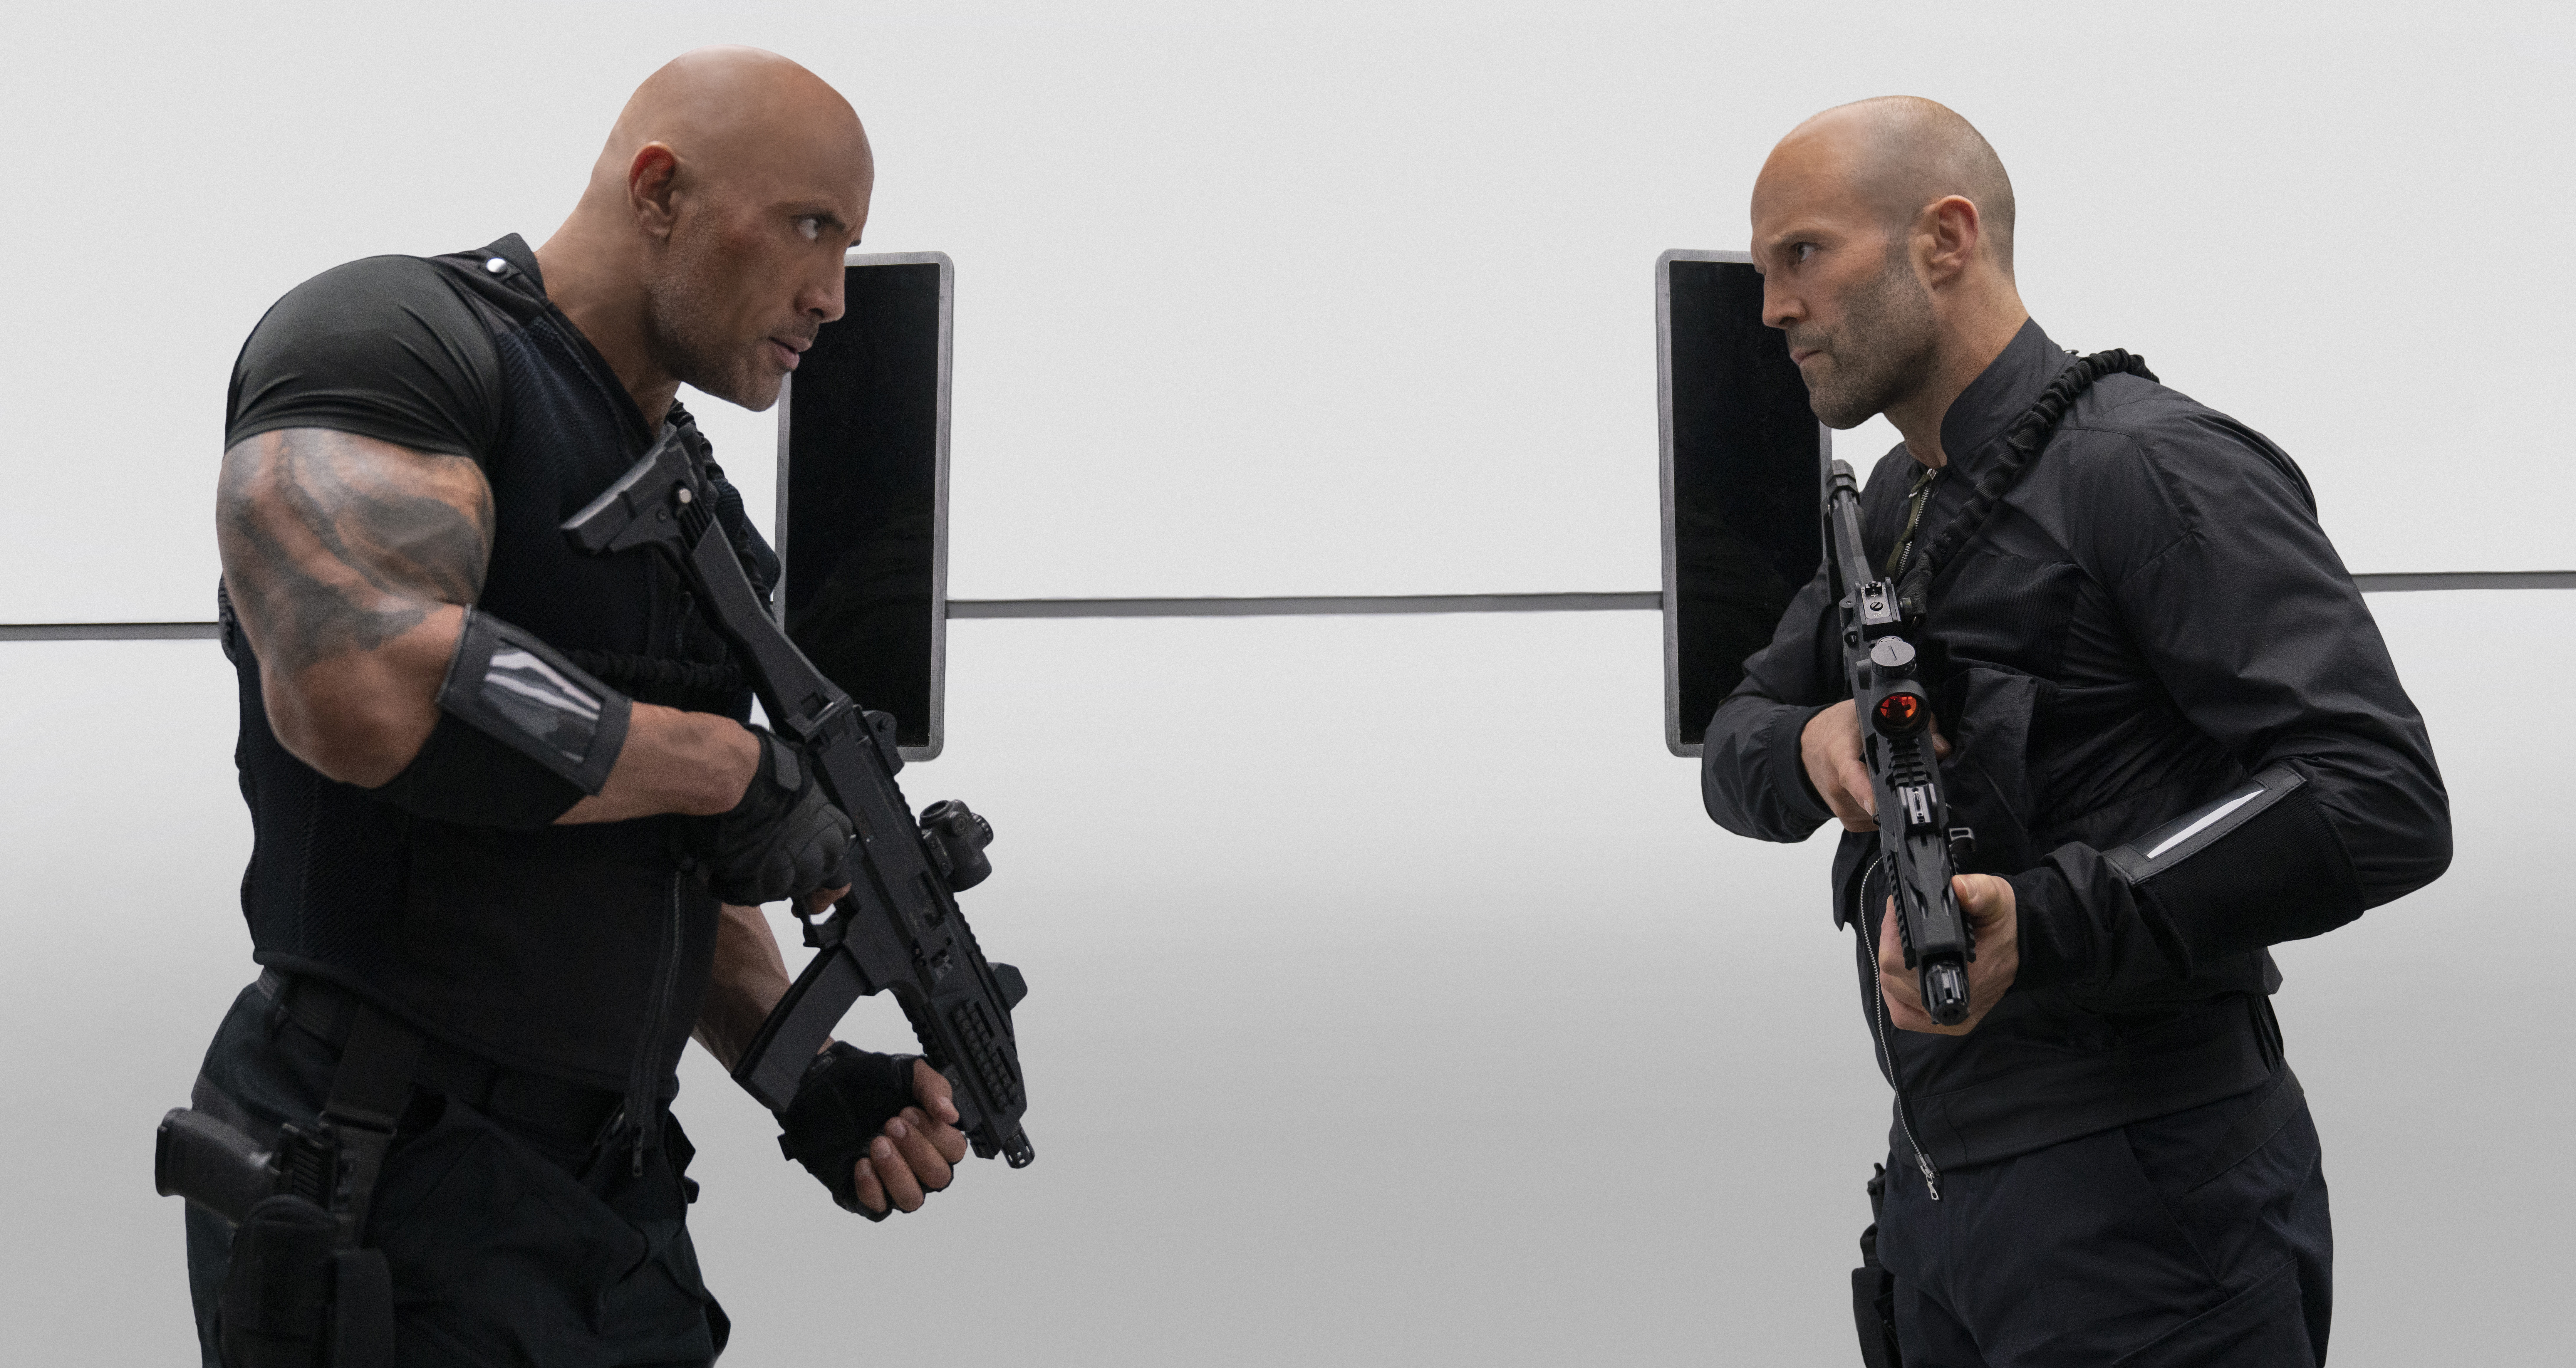 Dwayne 'the Rock' Johnson and Jason Stathem in Fast & Furious Presents: Hobbs & Shaw